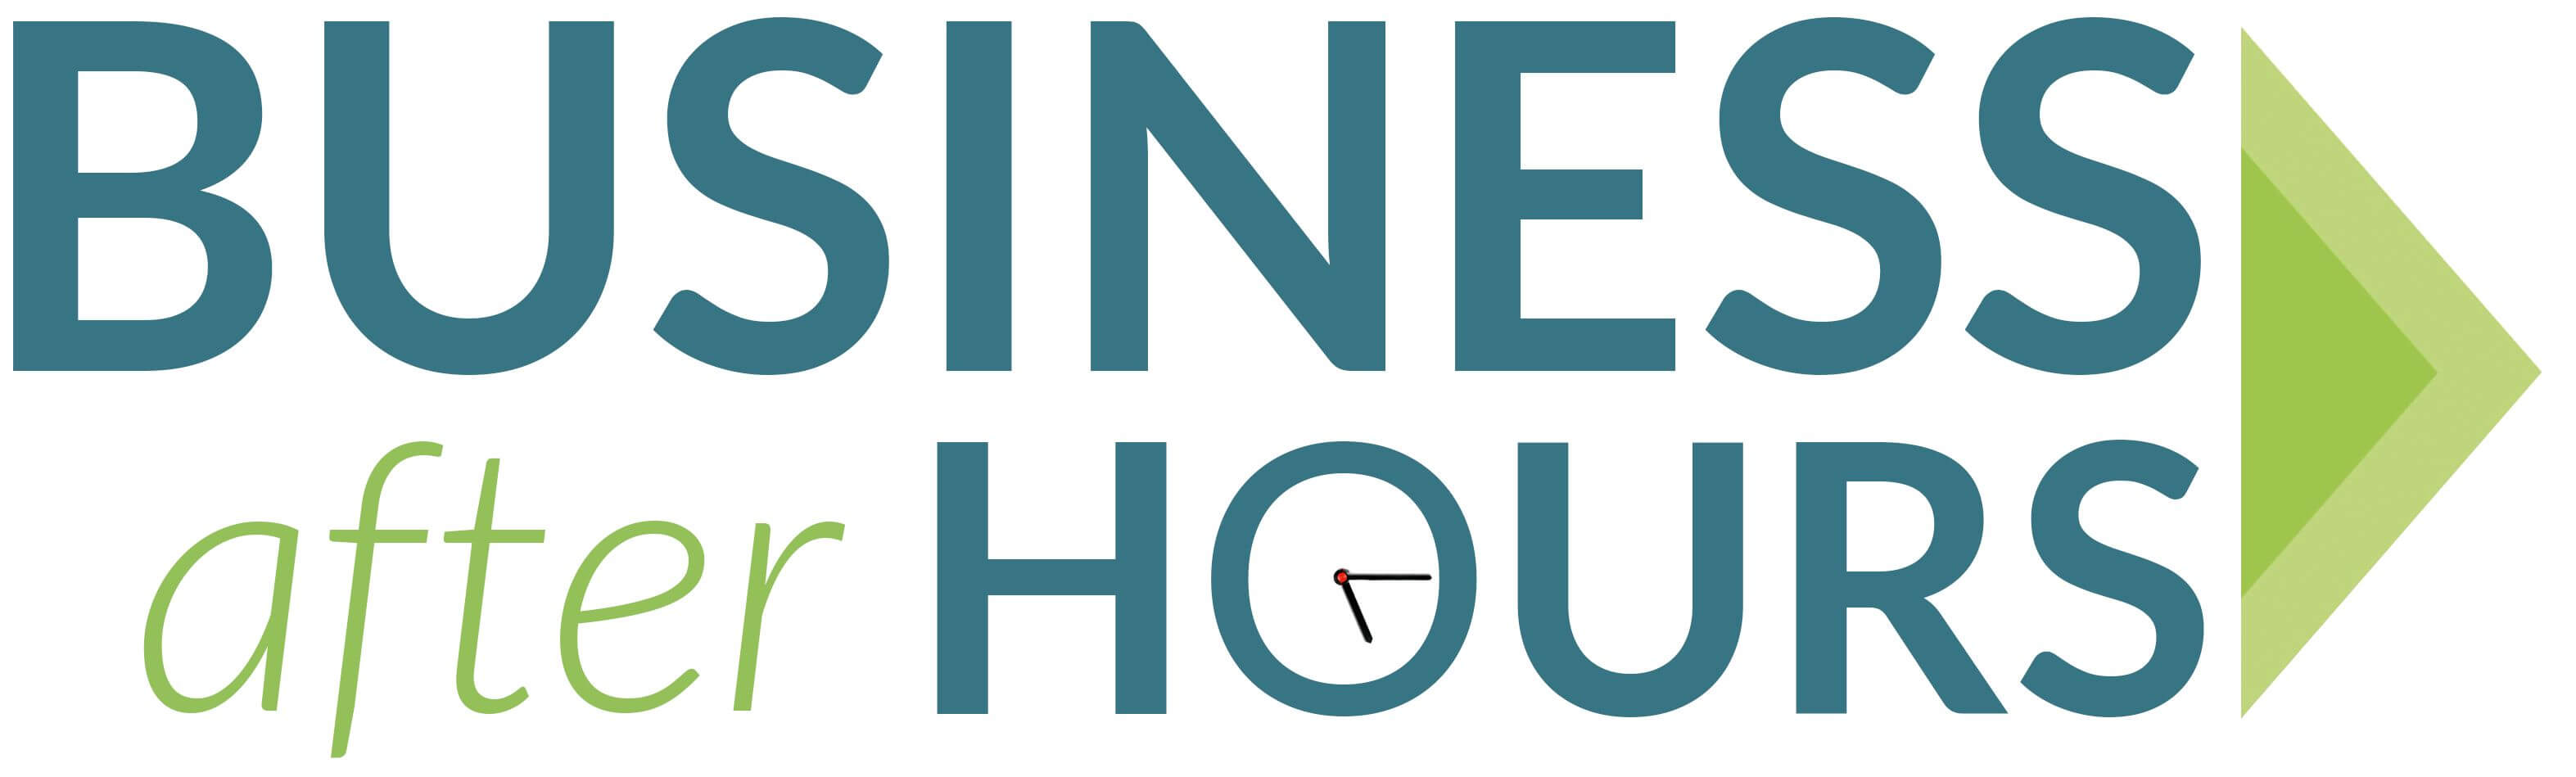 Business After Hours Logo 2